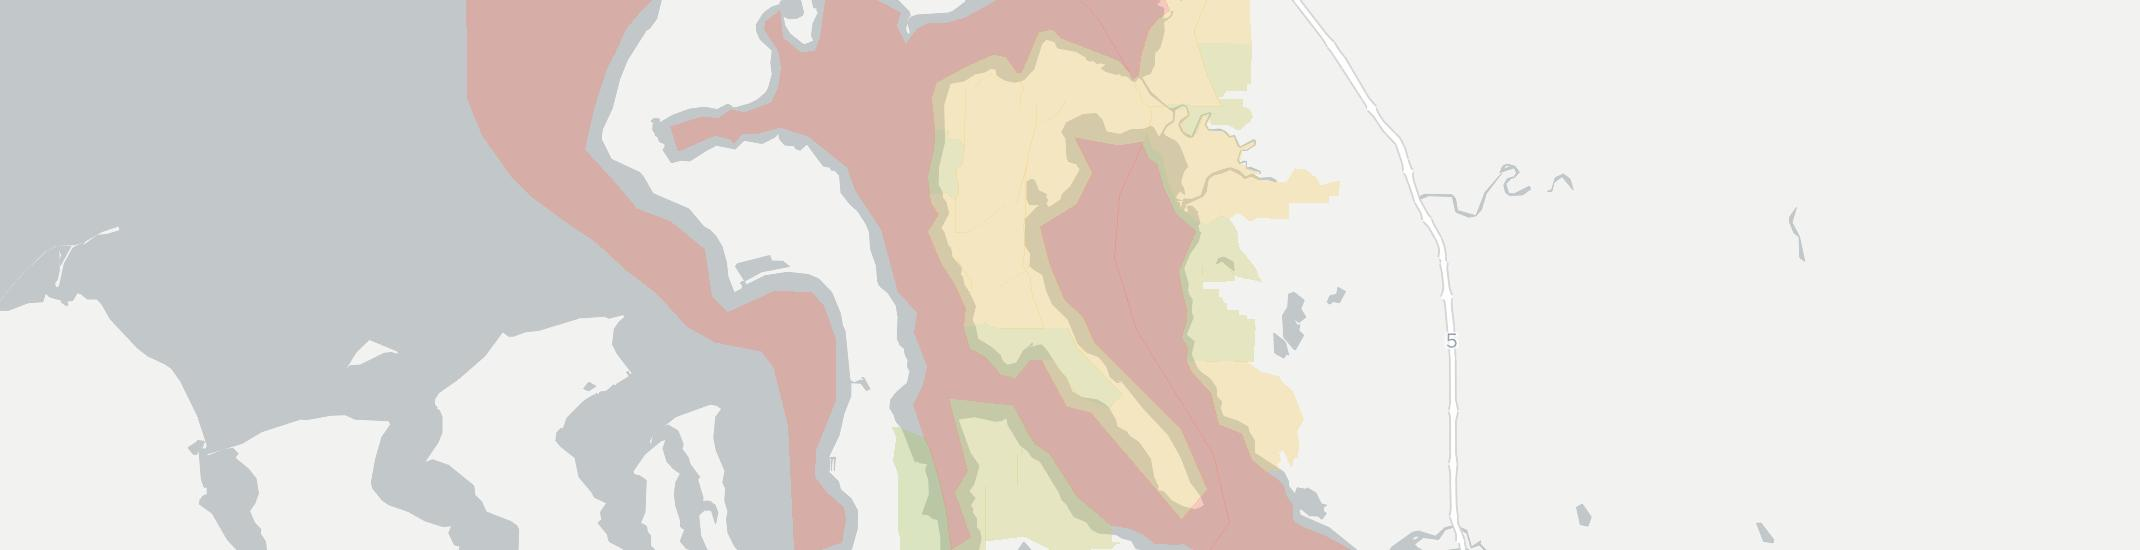 Camano Island Internet Competition Map. Click for interactive map.